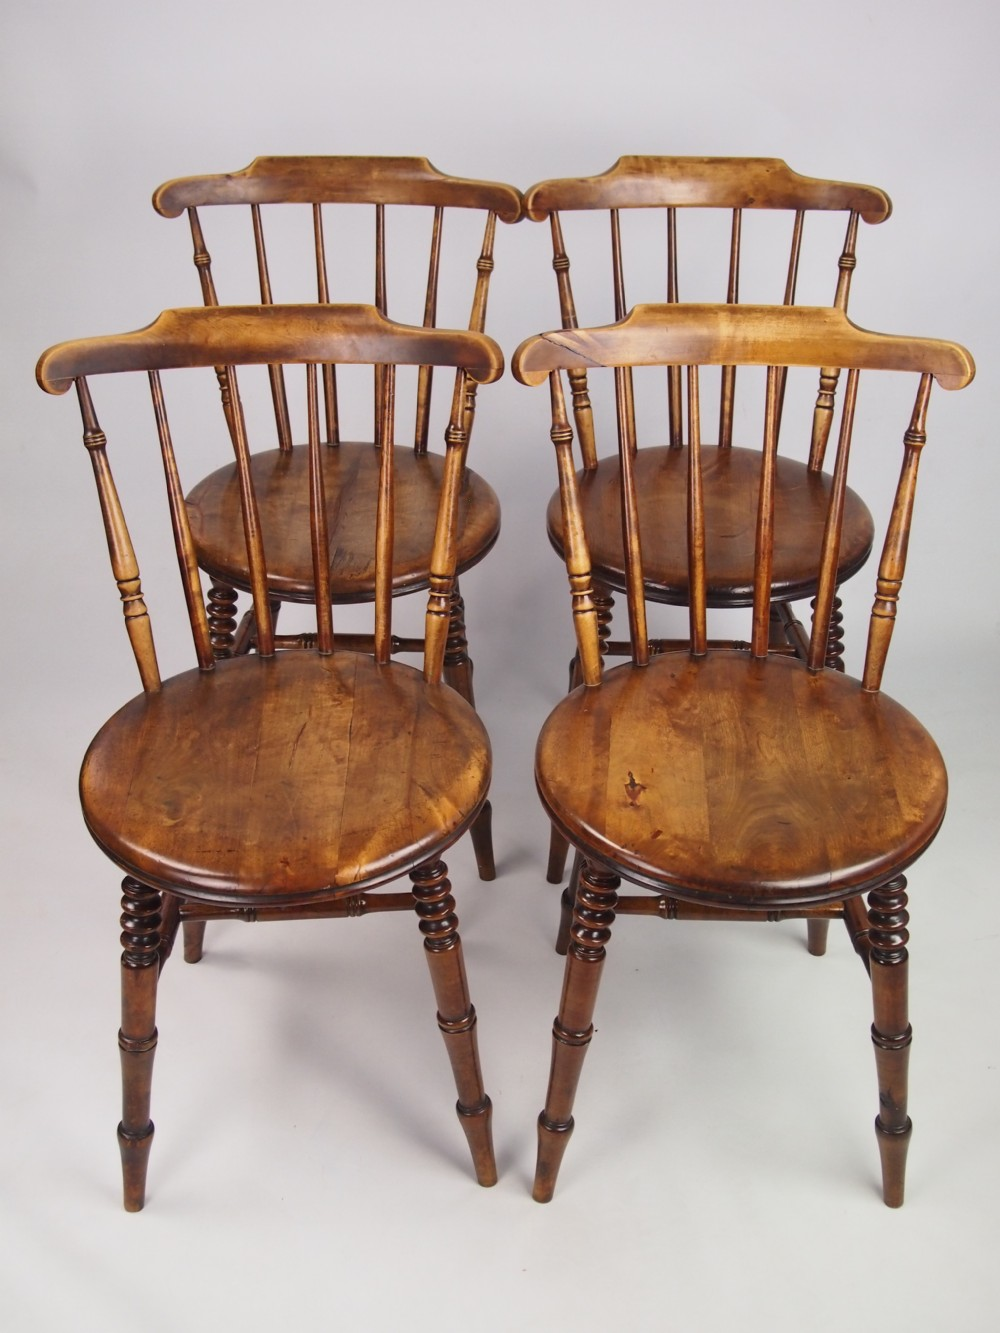 set 4 antique pine kitchen chairs - Set 4 Antique Pine Kitchen Chairs 267710 Sellingantiques.co.uk